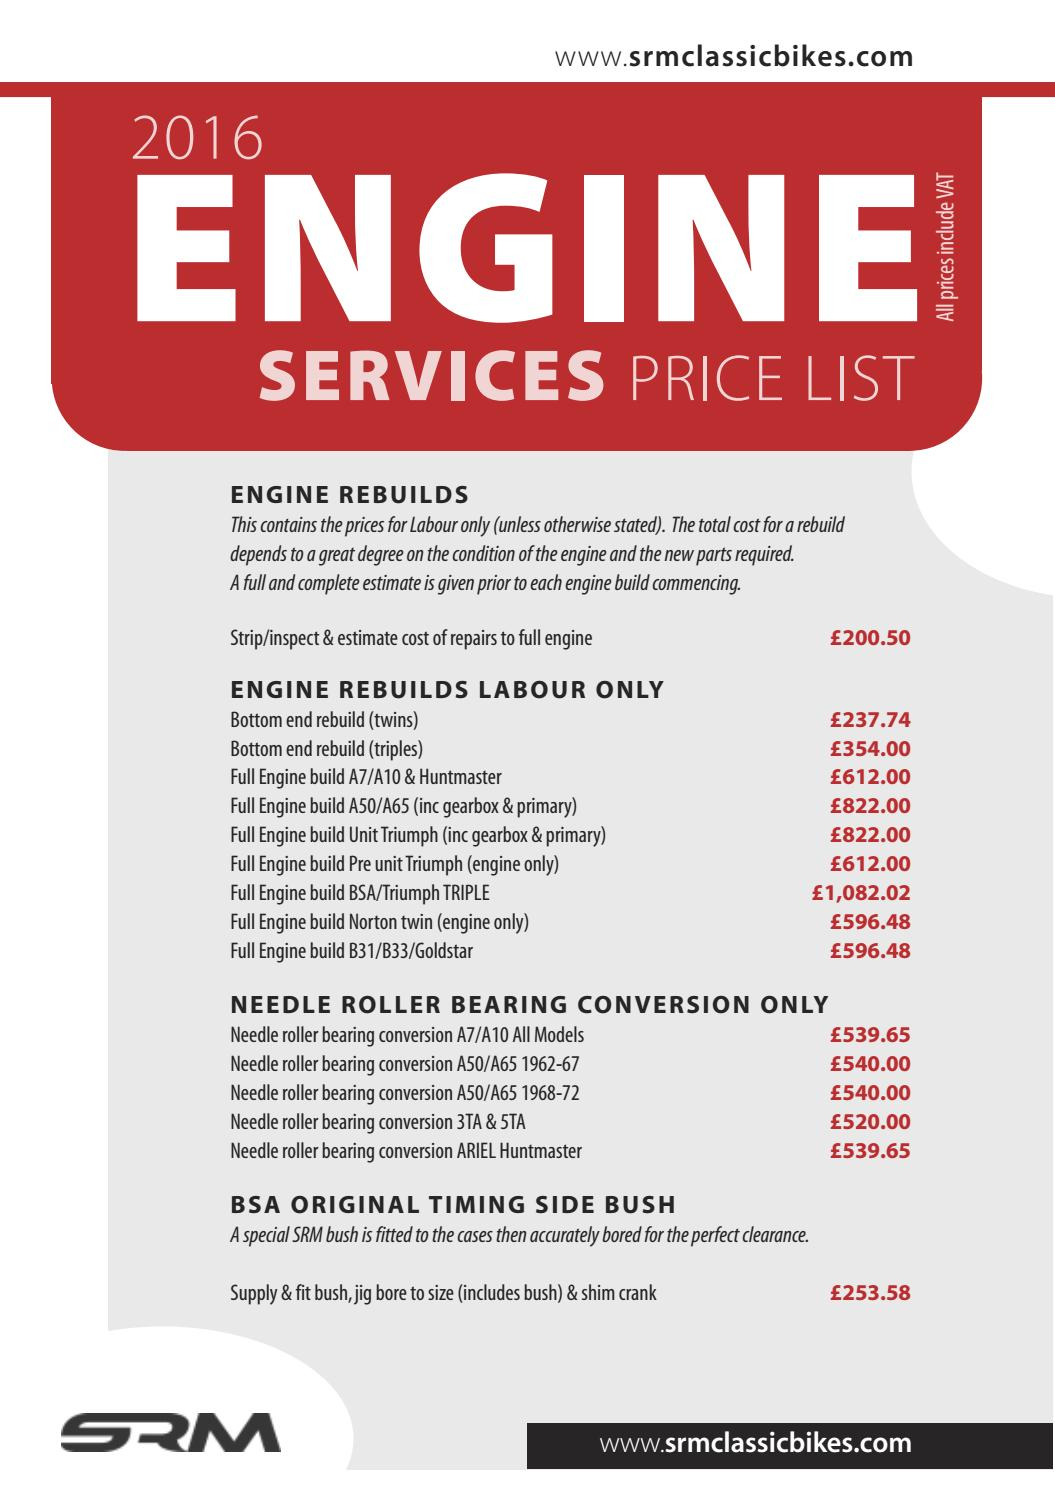 Srm Engine Services Price List By Srm Classic Bikes Issuu